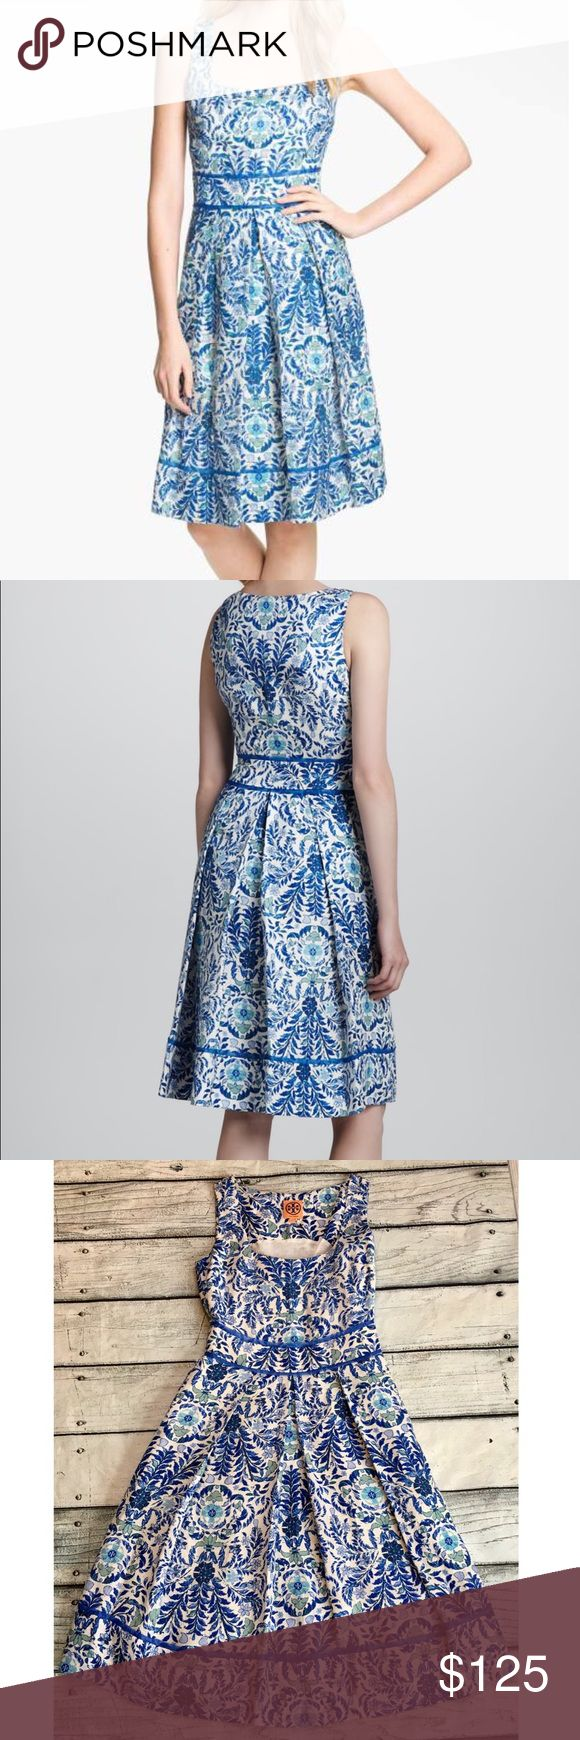 Tory Burch Ramona dress blue ivory linen dress 0 Preowned Woman's Tory Burch Ramona linen silk mix dress lined blue ivory pretty print size 0 side zipper see all measurements in photos squared neckline trim at waist and skirt sleeveless. Beautiful dress! Tory Burch Dresses